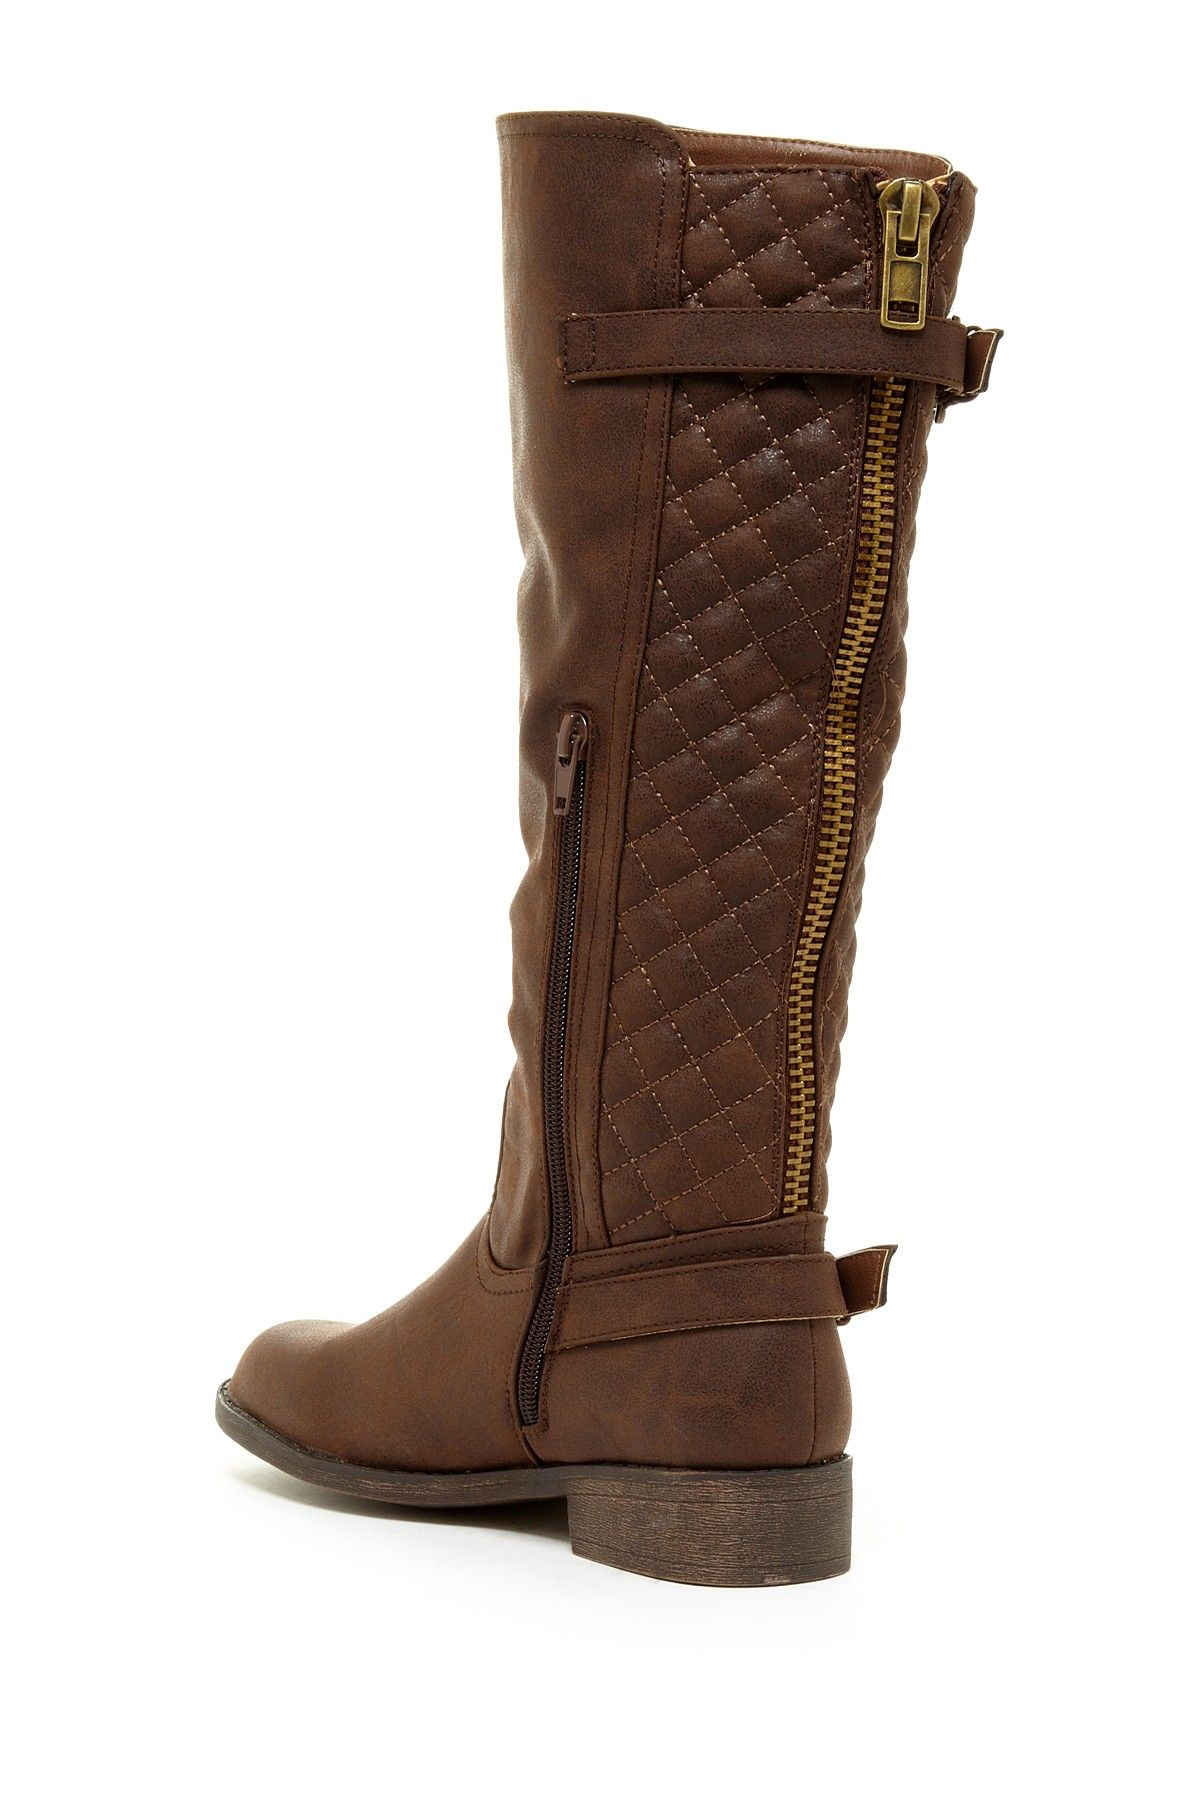 Volar Fashion Nadin Quilted Two Strap Riding Boot by Volar Fashion on @nordstrom_rack